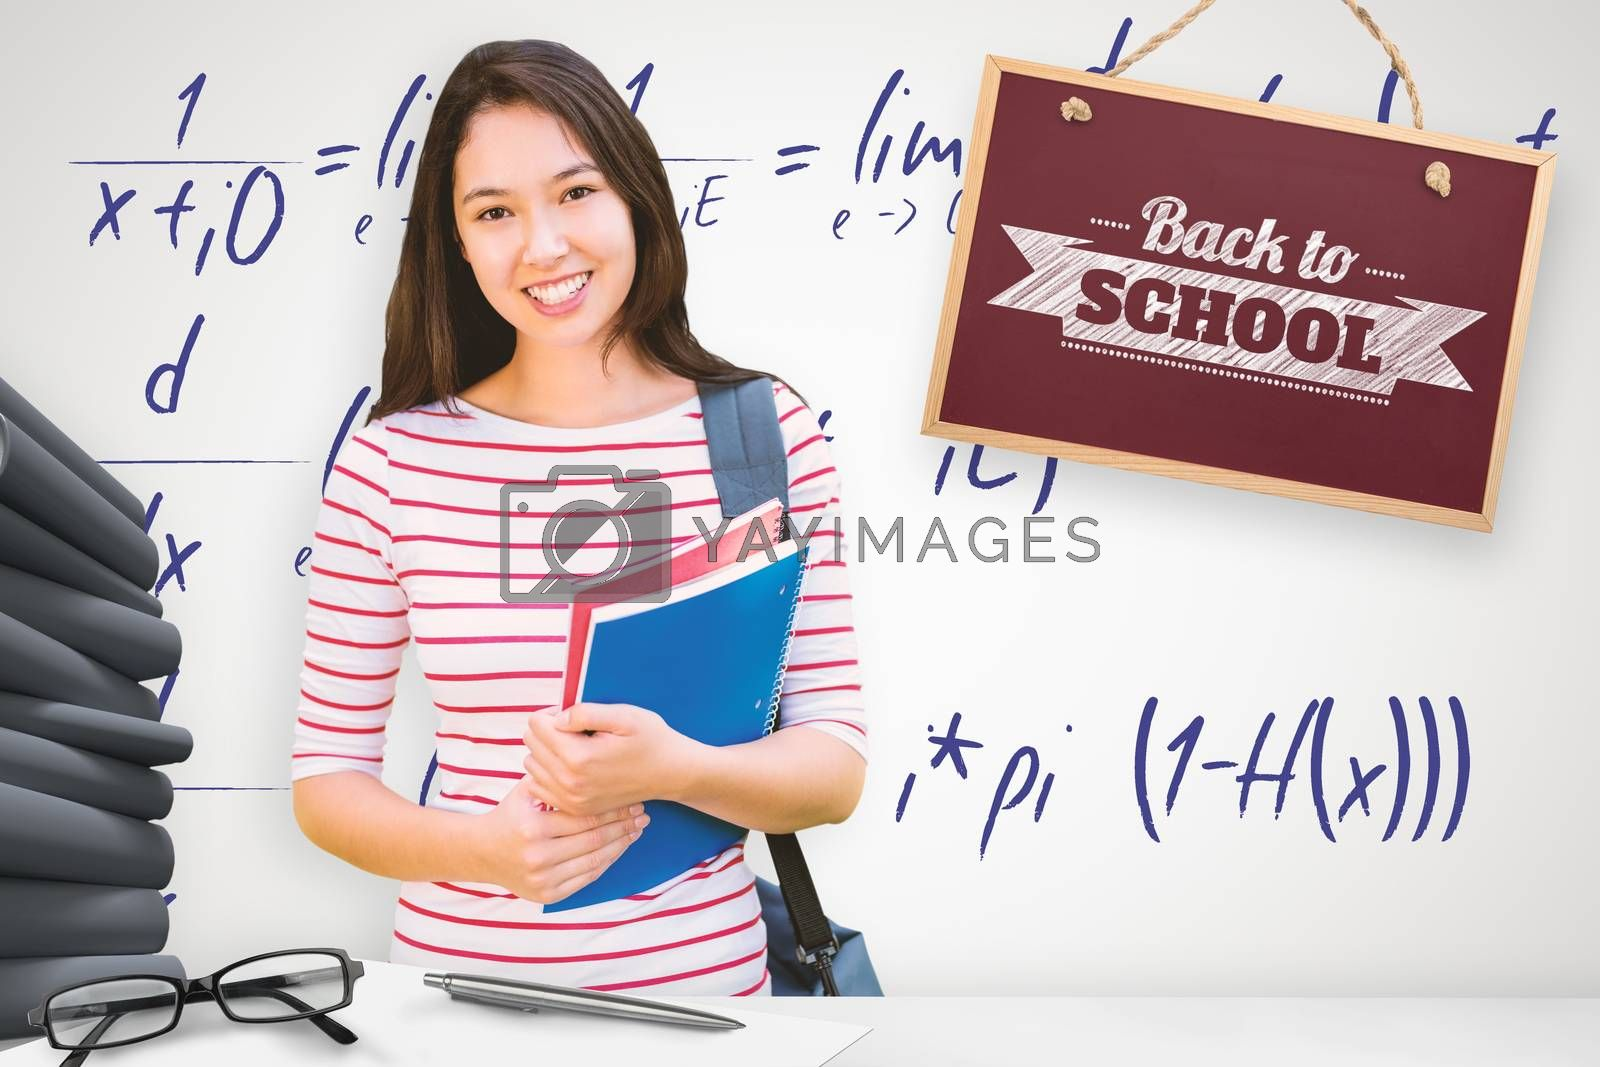 College girl holding books with blurred students in park against grey background